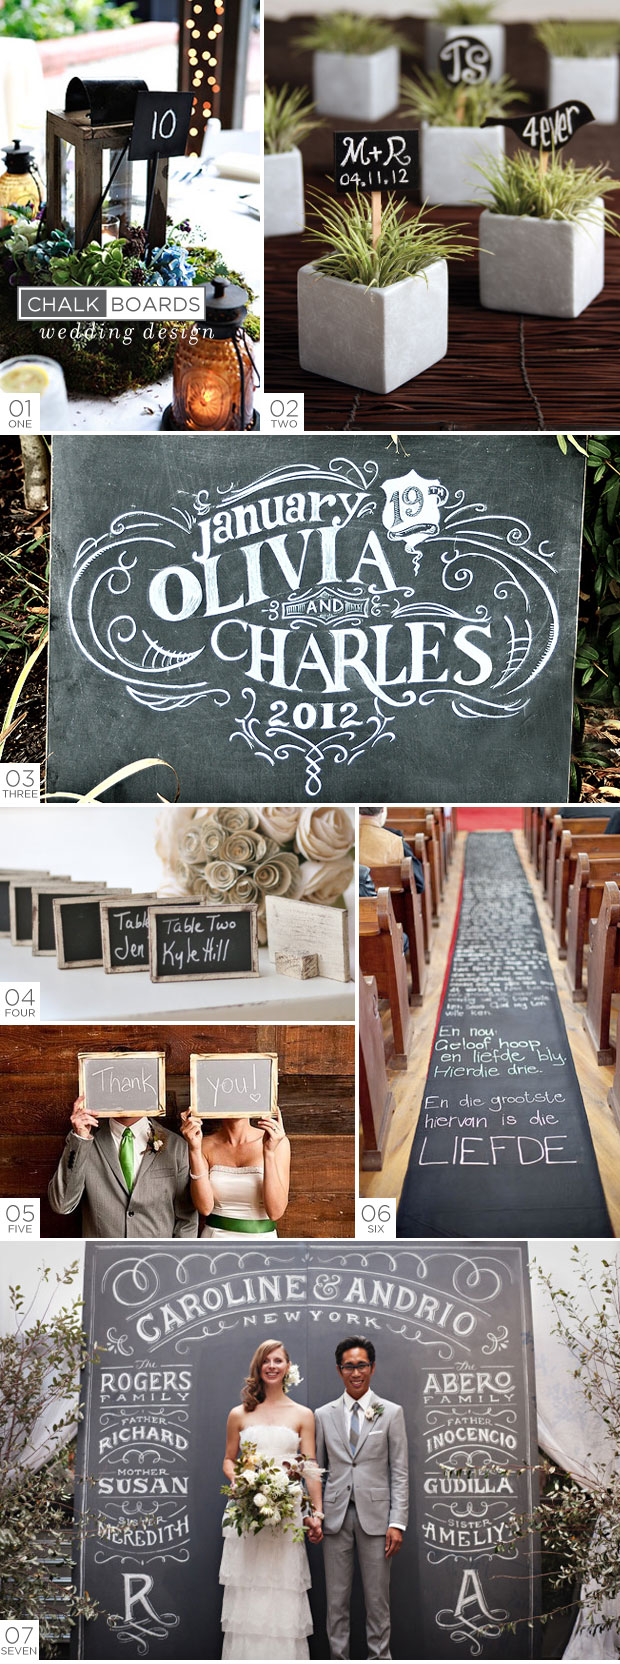 Chalkboards - Wedding Design